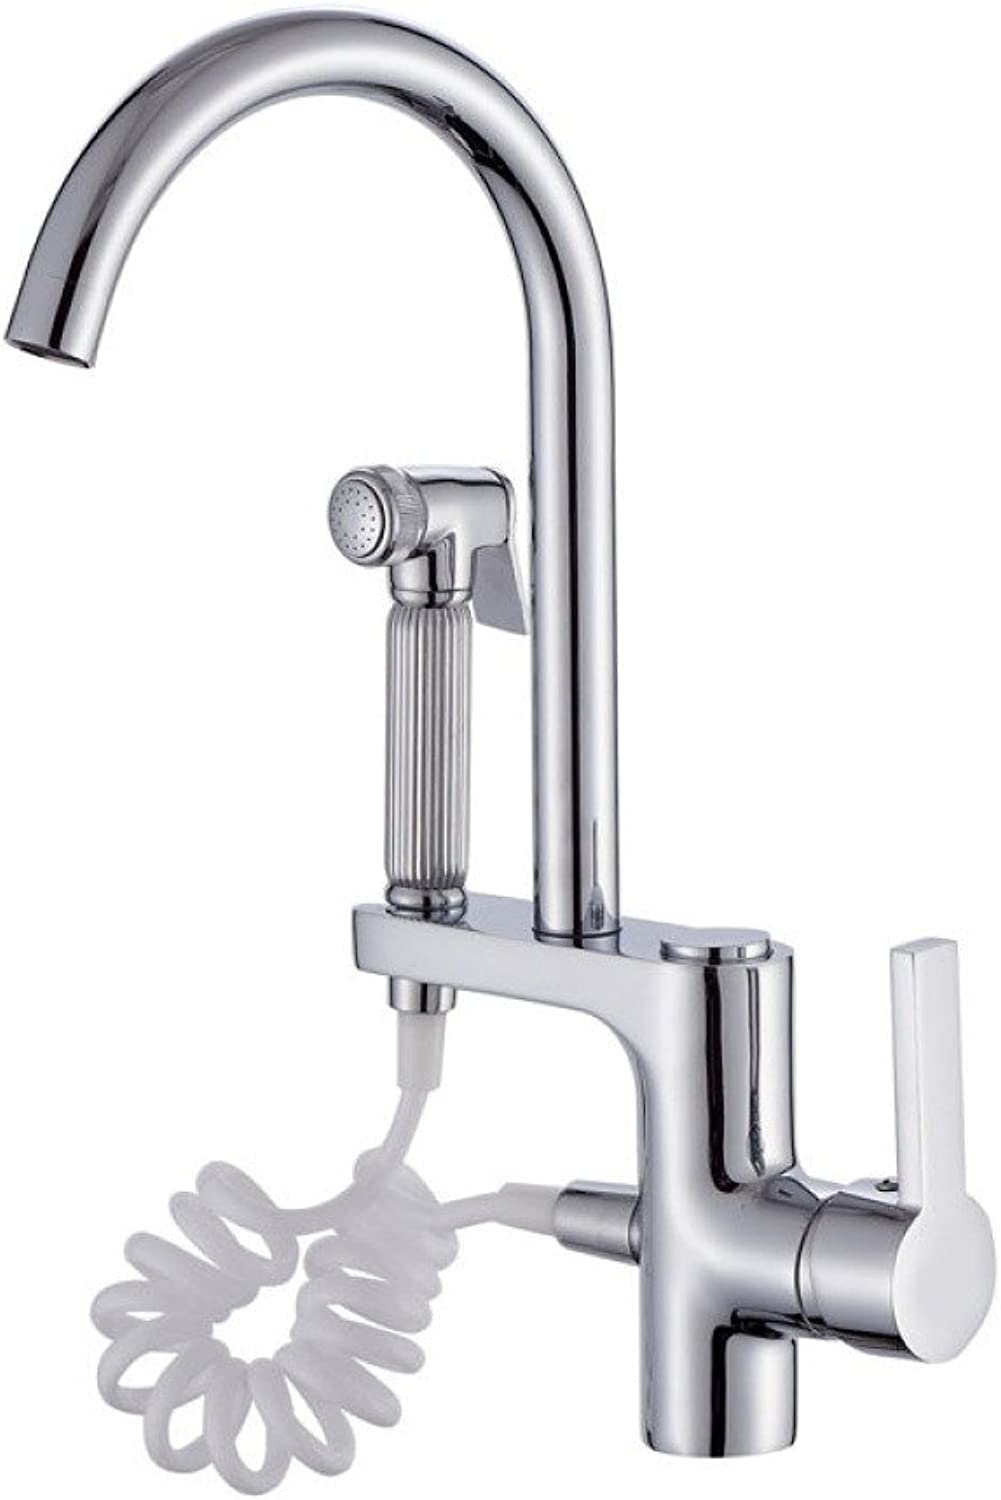 ZXY Copper Plating Withdrawal Sprinkler Faucet Kitchen Hot and Cold Water Multifunction Sink Faucet